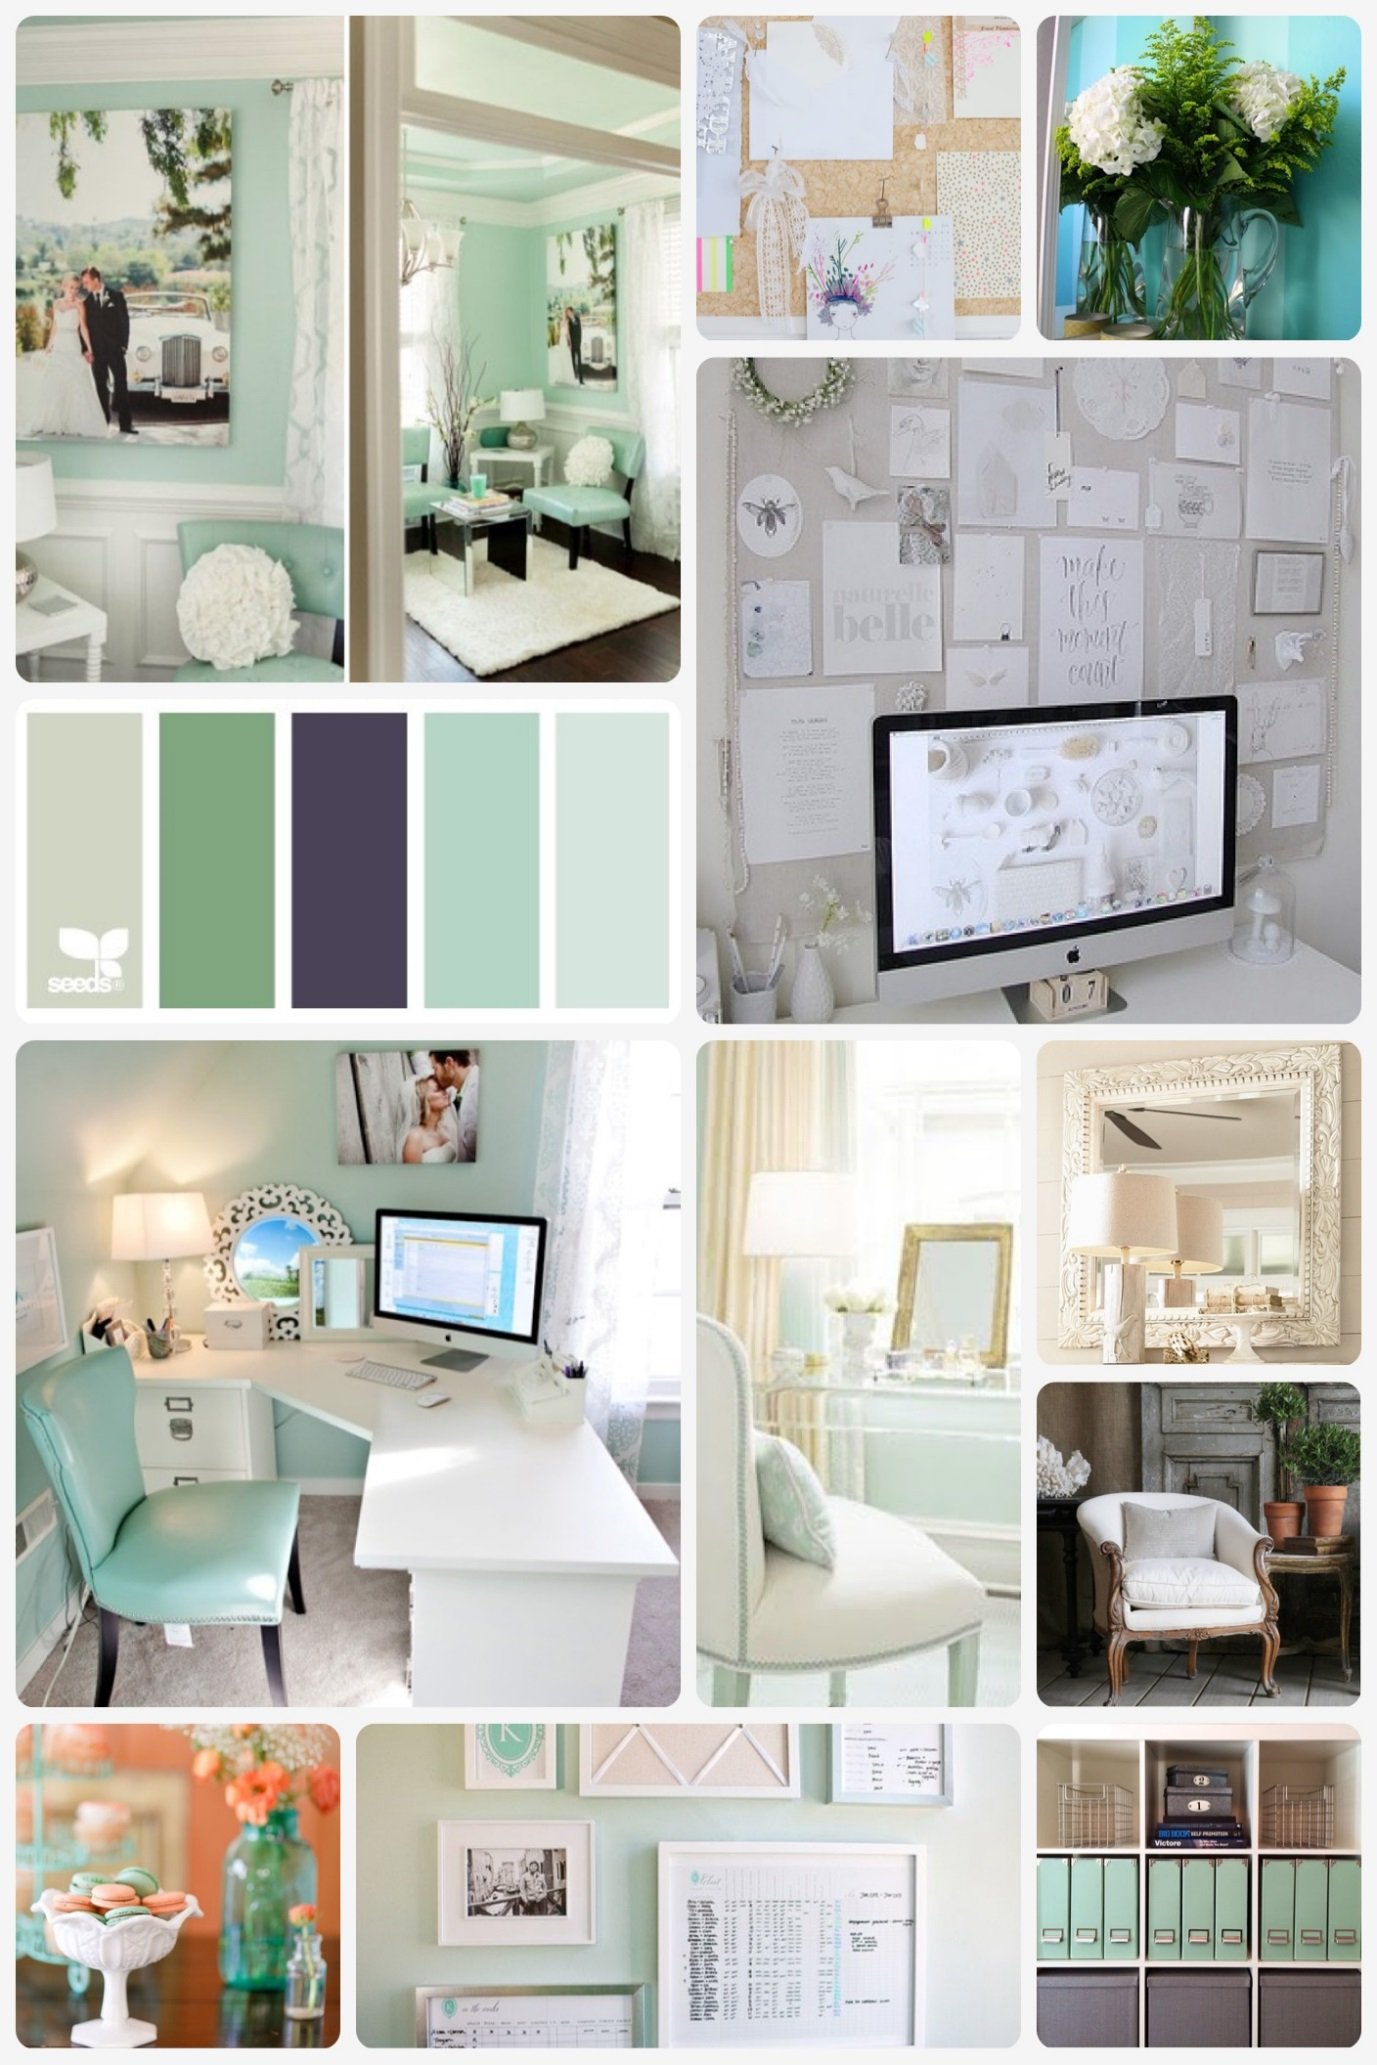 Wedding Planning, Styling & Design : Design Your Home Office for ...